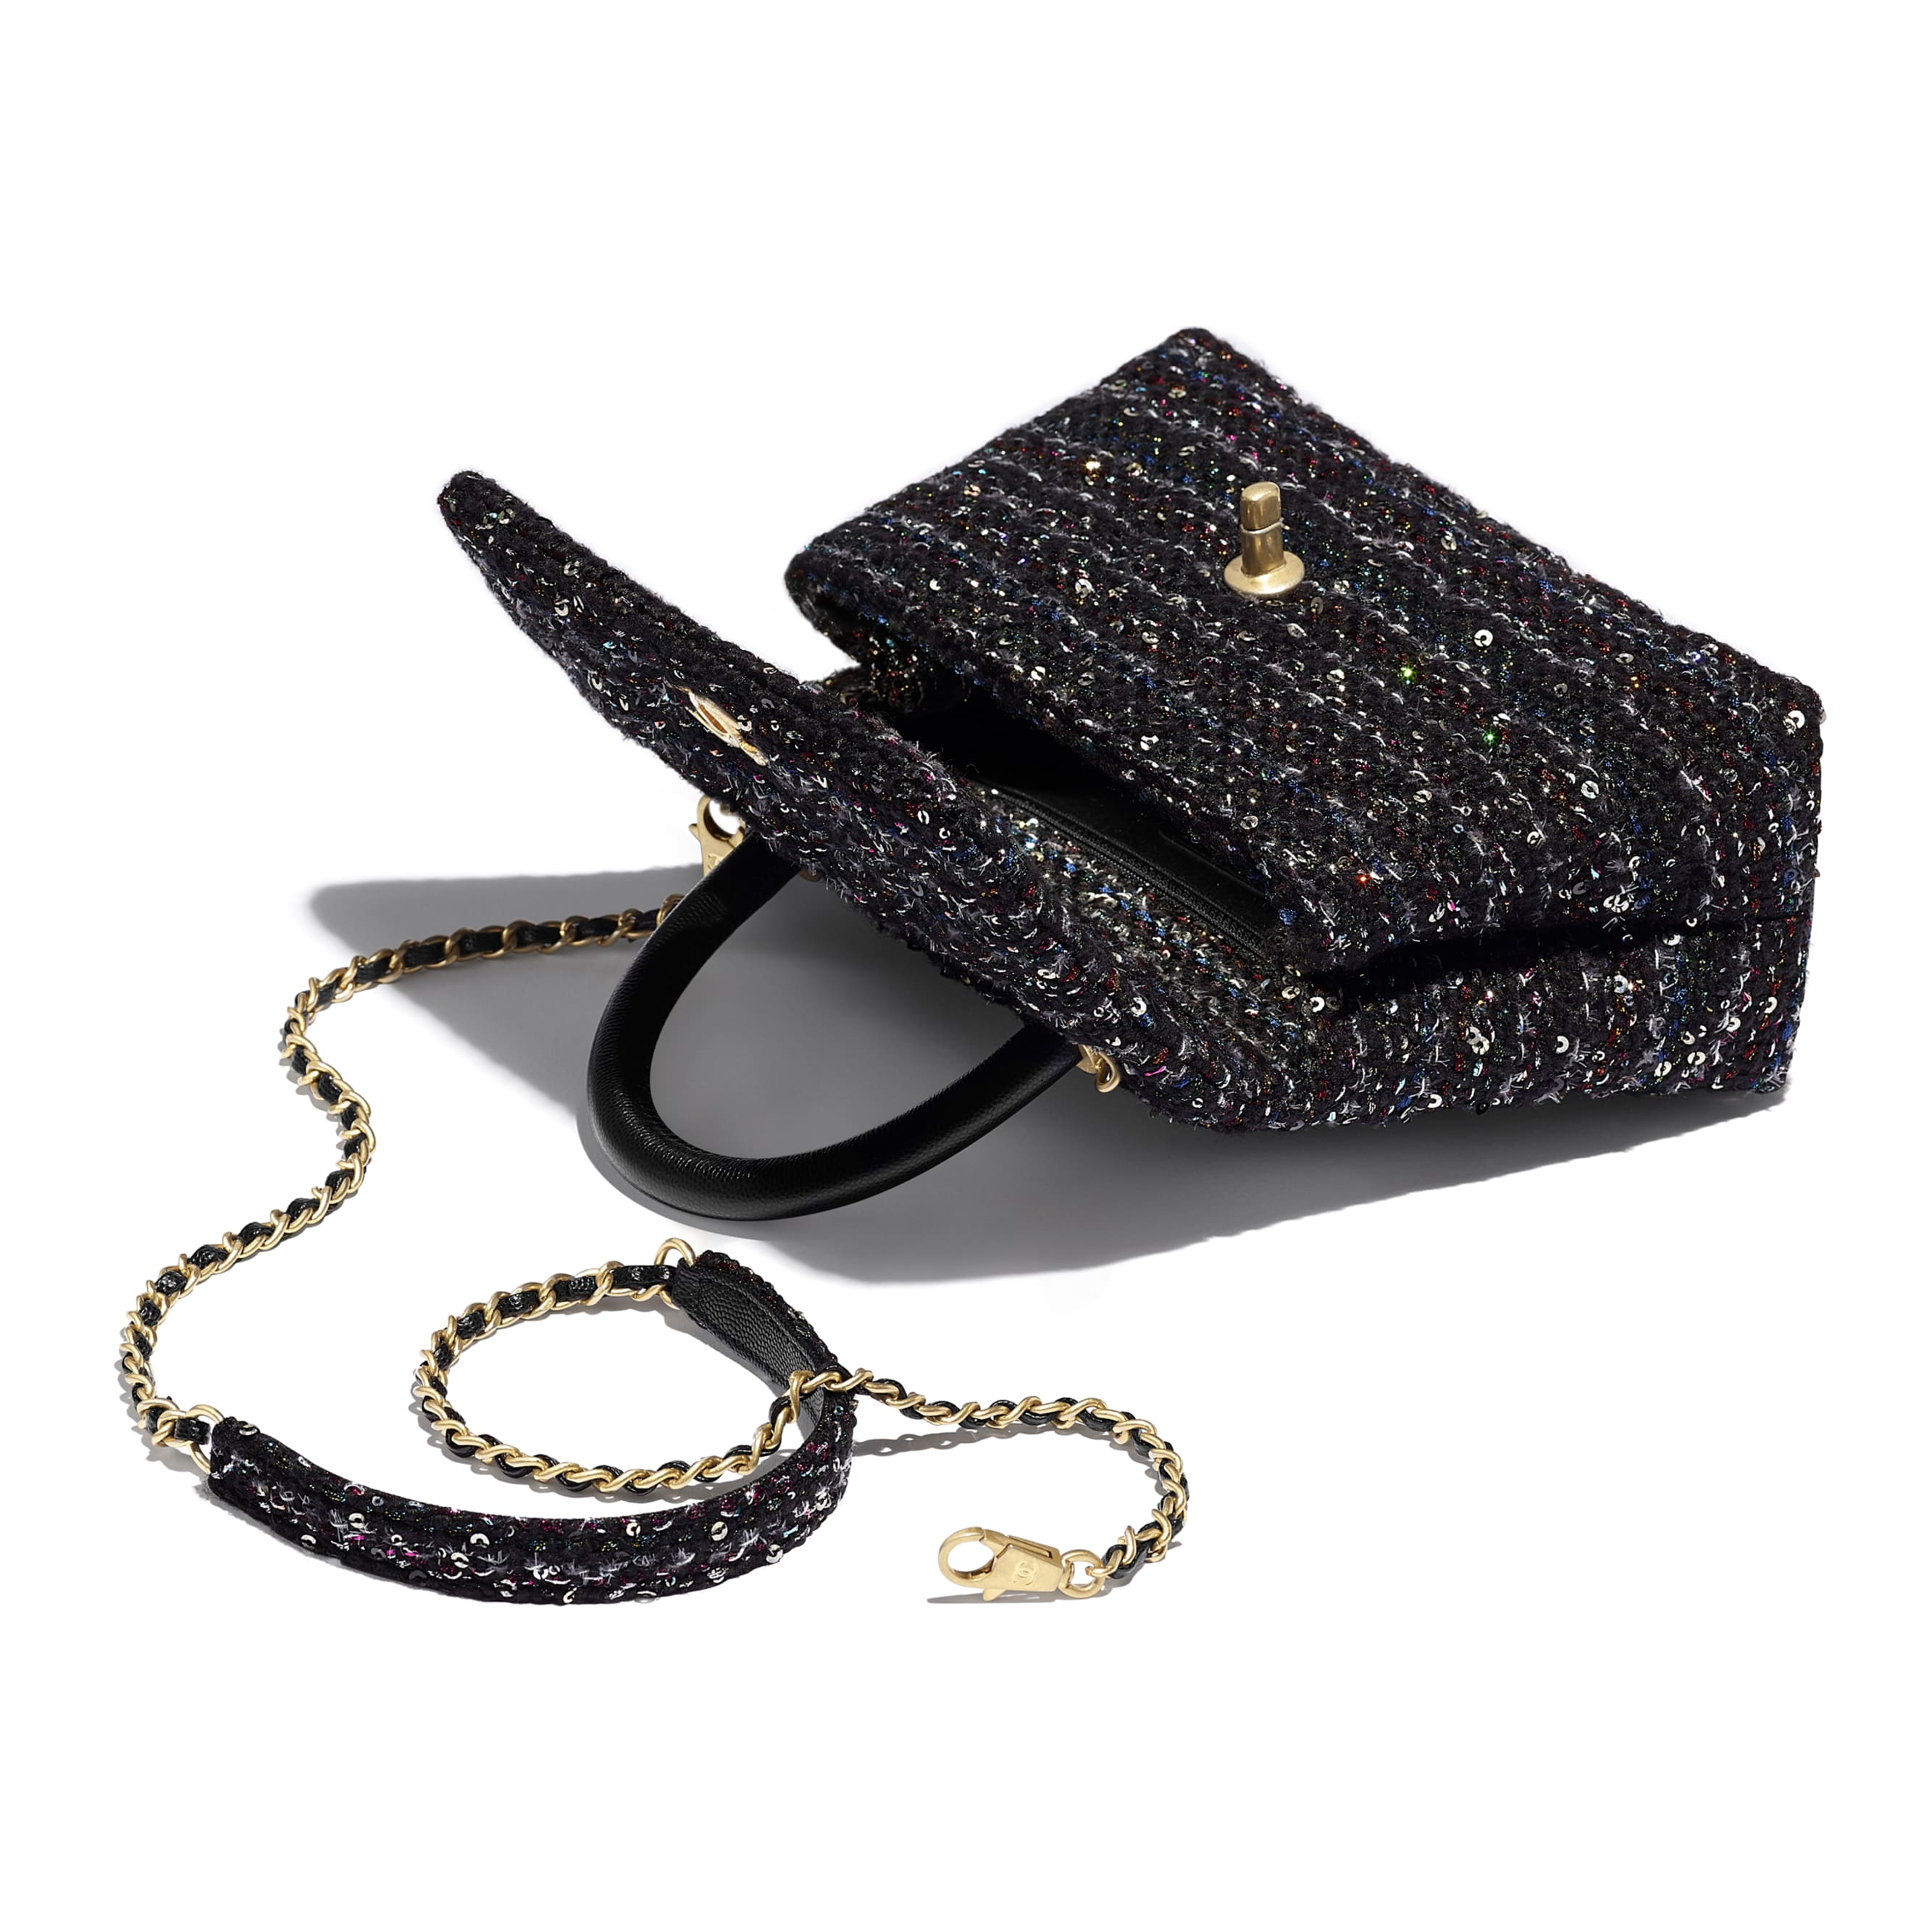 Small Flap Bag With Top Handle - Black, Silver, Blue & Red - Tweed, Grained Calfskin & Gold-Tone Metal - CHANEL - Other view - see standard sized version